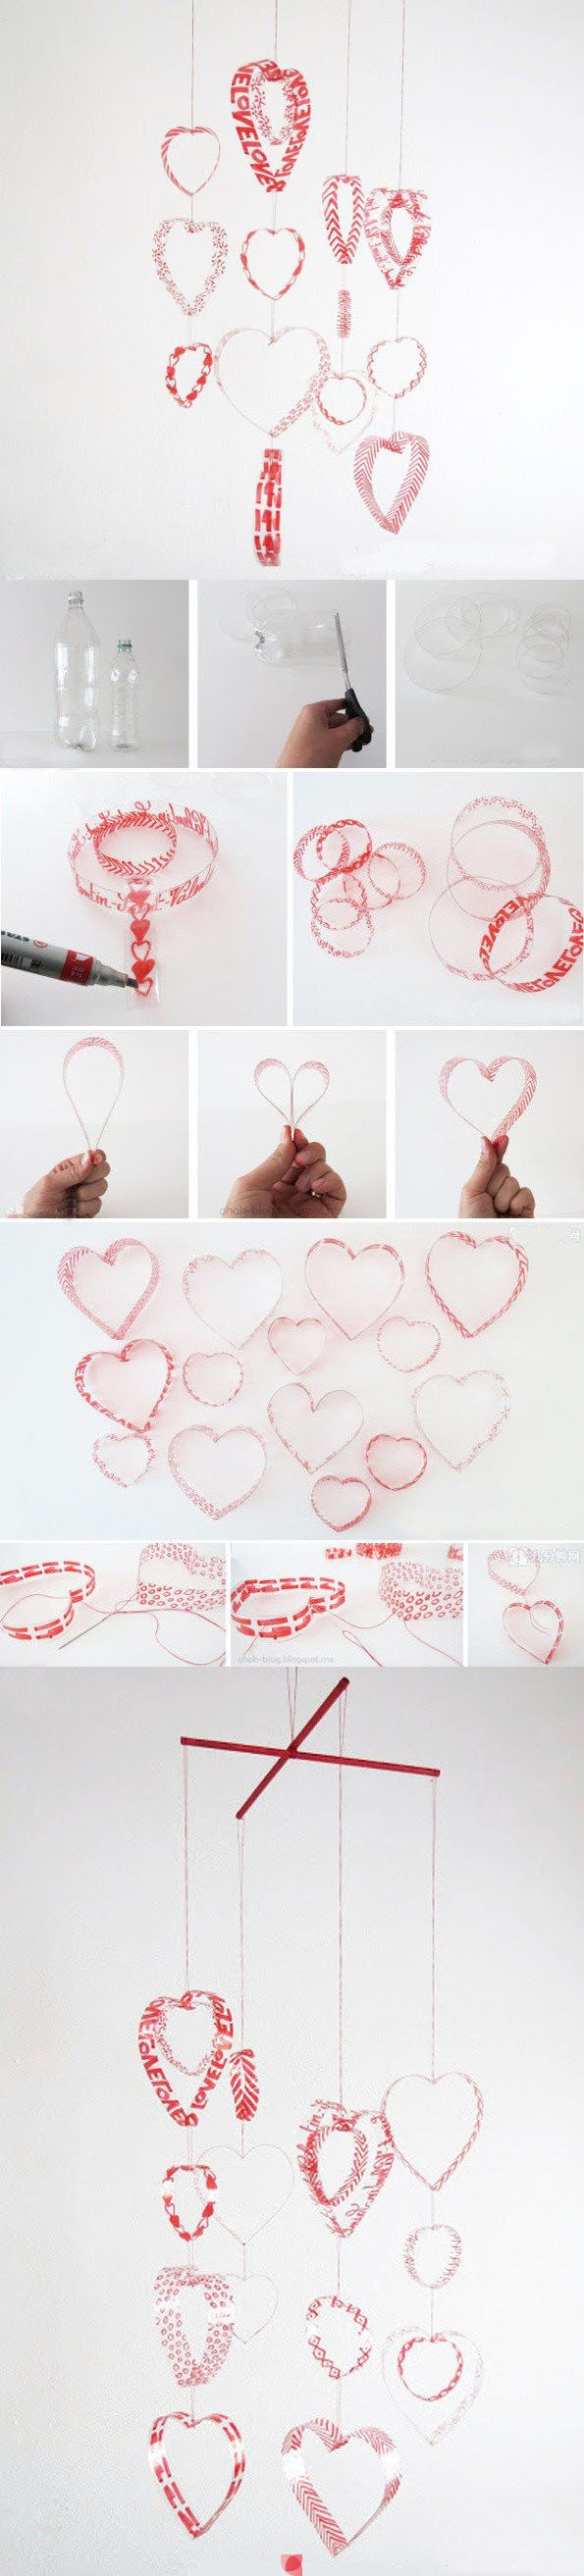 Hanging hearts from plastic bottles.